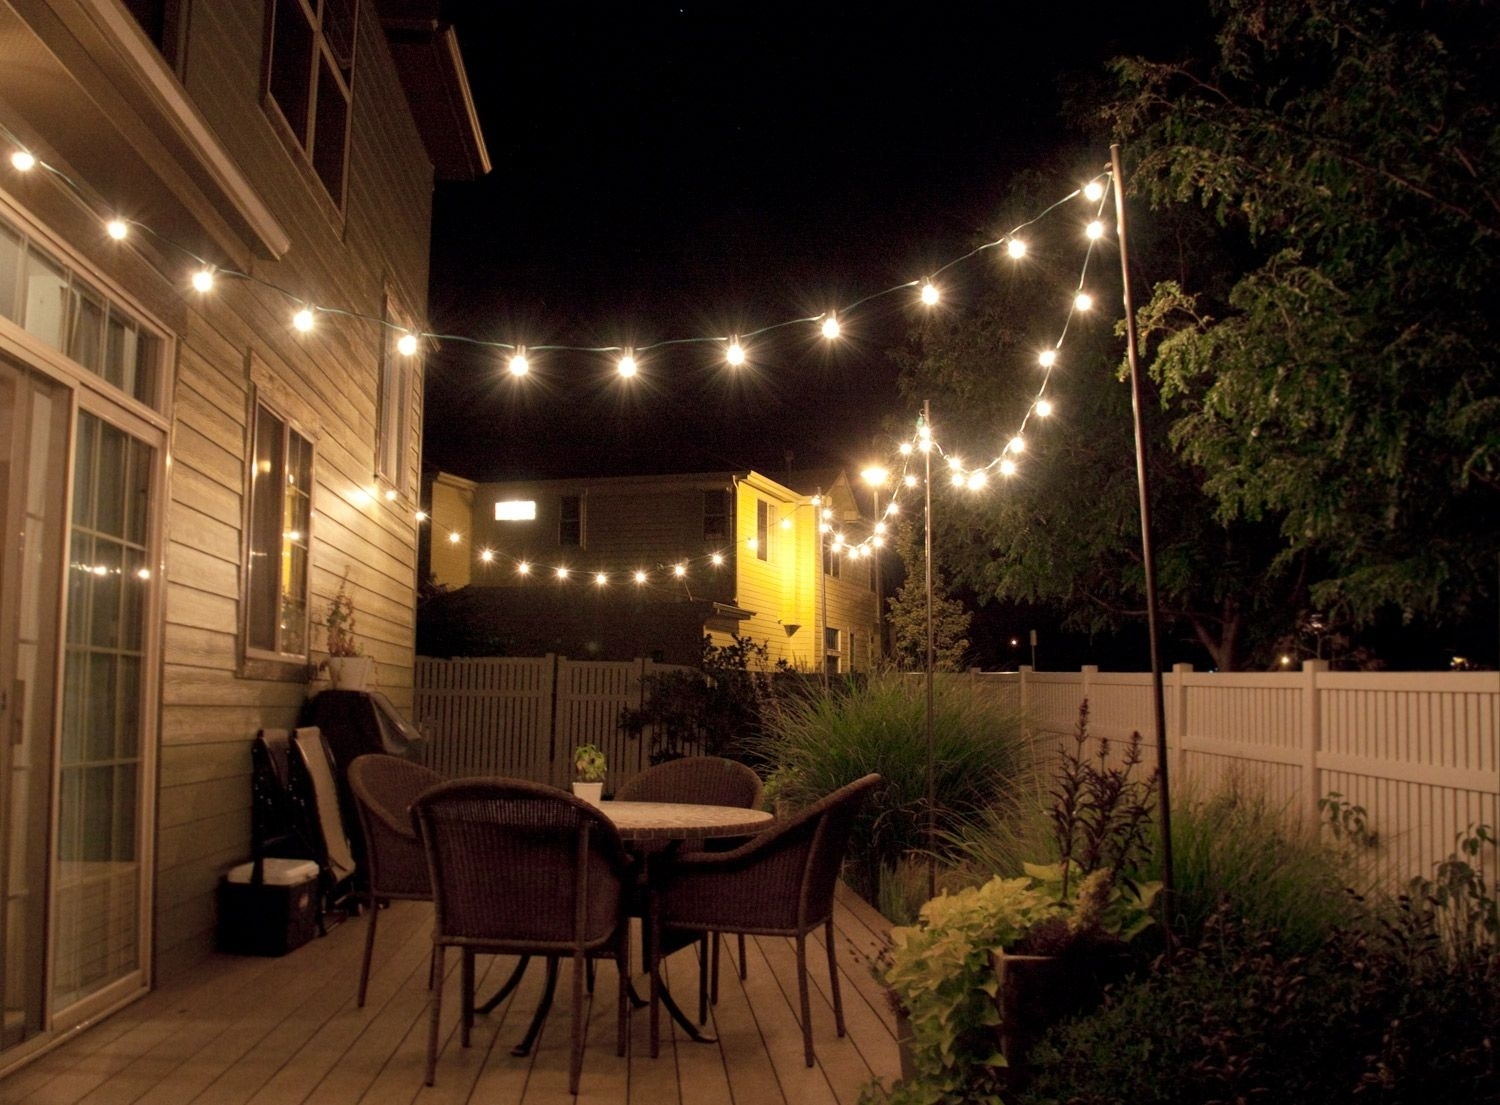 How To Make Inexpensive Poles To Hang String Lights On – Café Style For Hanging Outdoor Cafe Lights (#8 of 15)